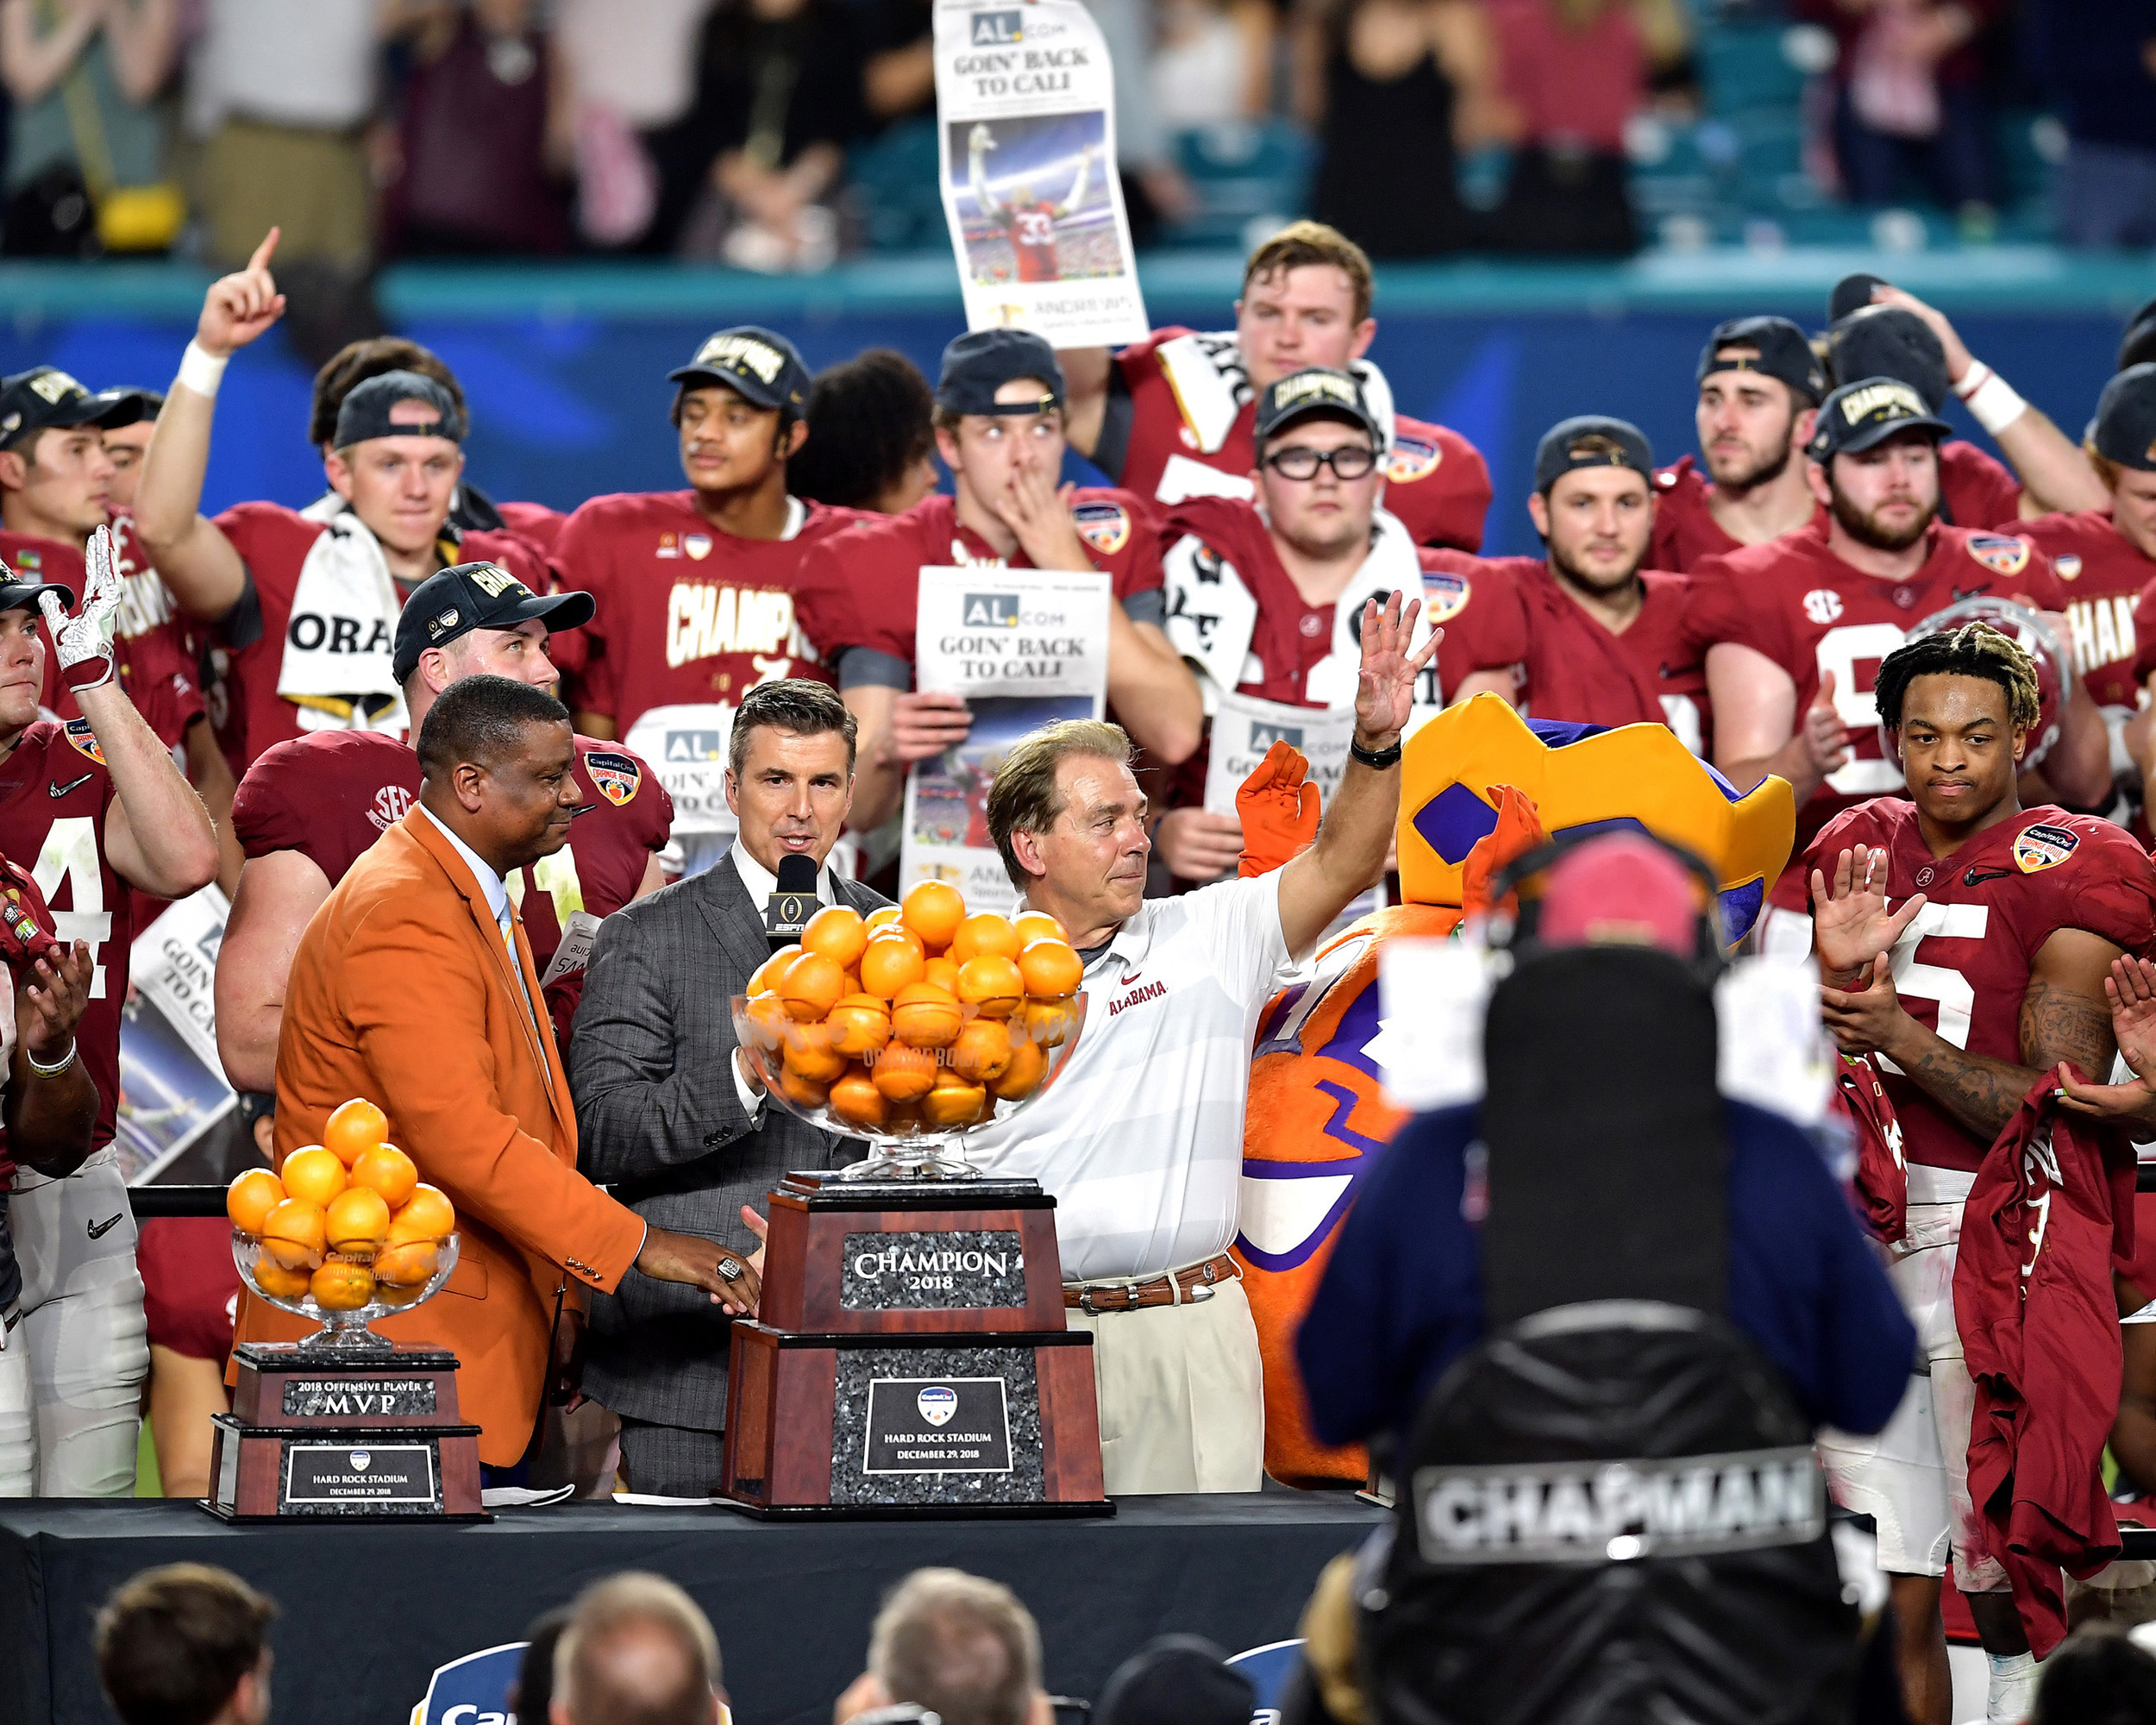 The trophy presentation following the Capital One Orange Bowl, featuring the Alabama Crimson Tide and the Oklahoma Sooners, at Hard Rock Stadium in Miami Gardens, Fla., Saturday, Dec. 29, 2018. Alabama wins 45-34. (Photo by Lee Walls)